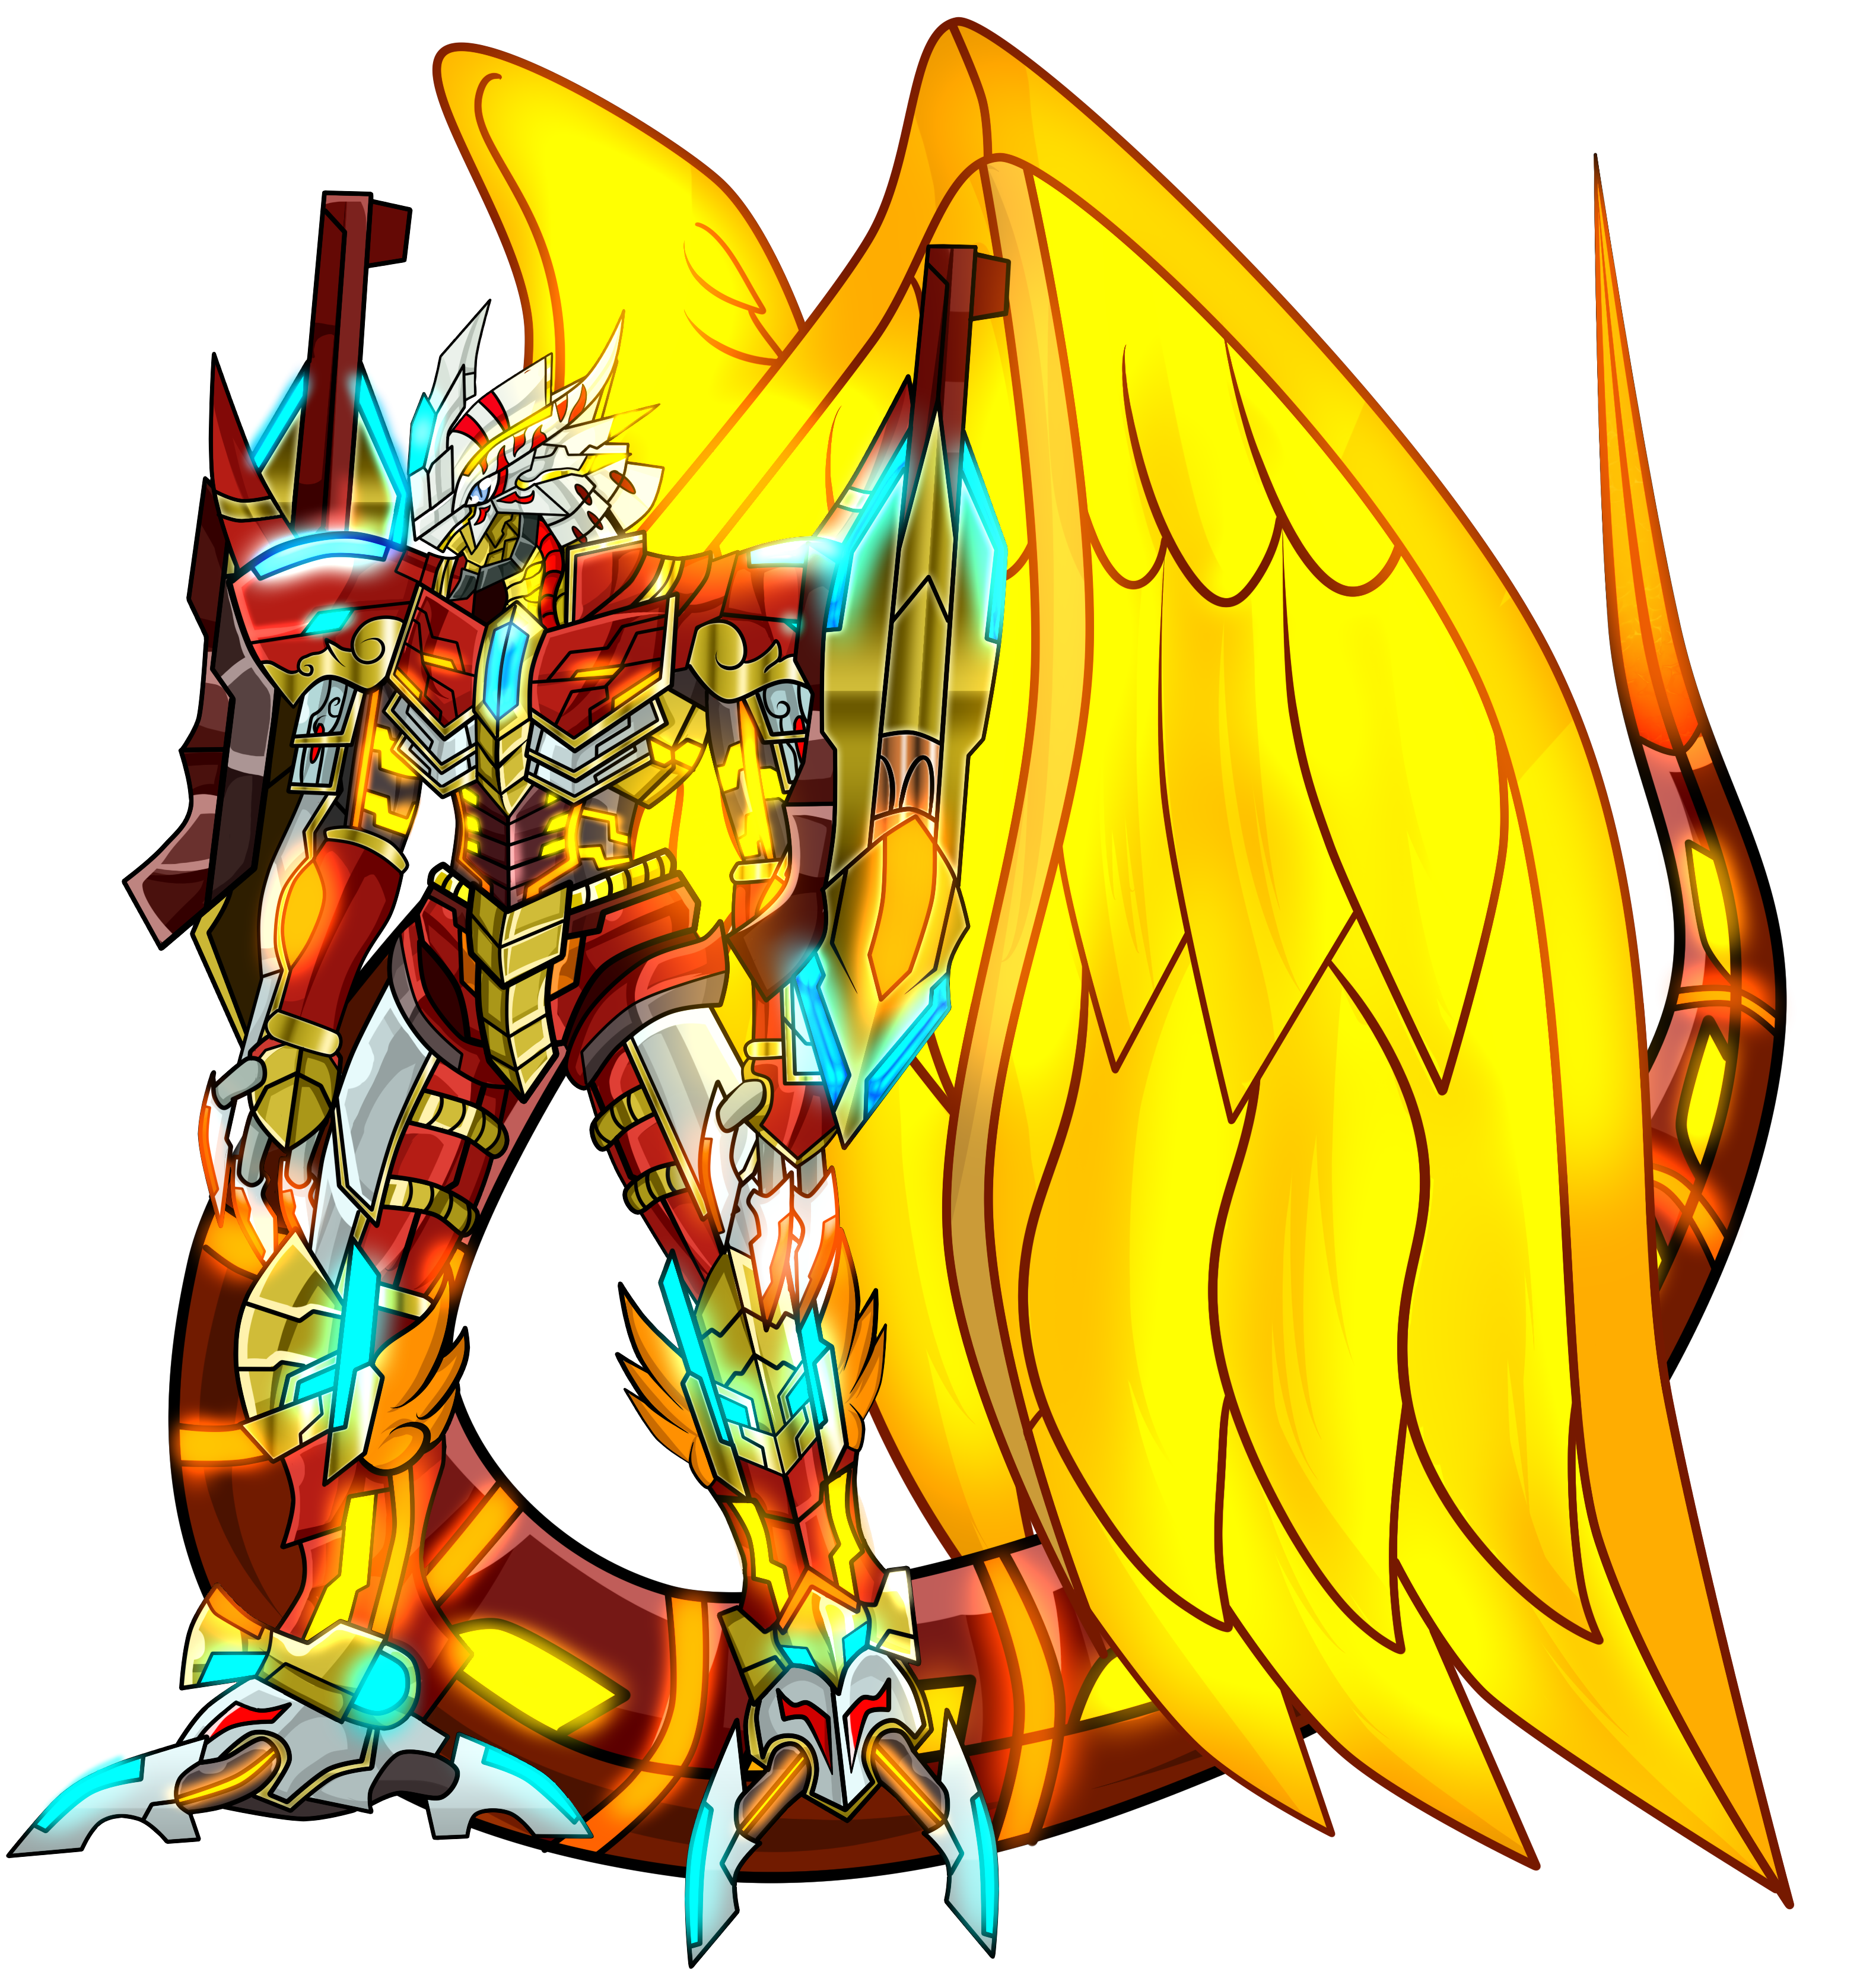 Burning-greymon X antibody by dragonnova52